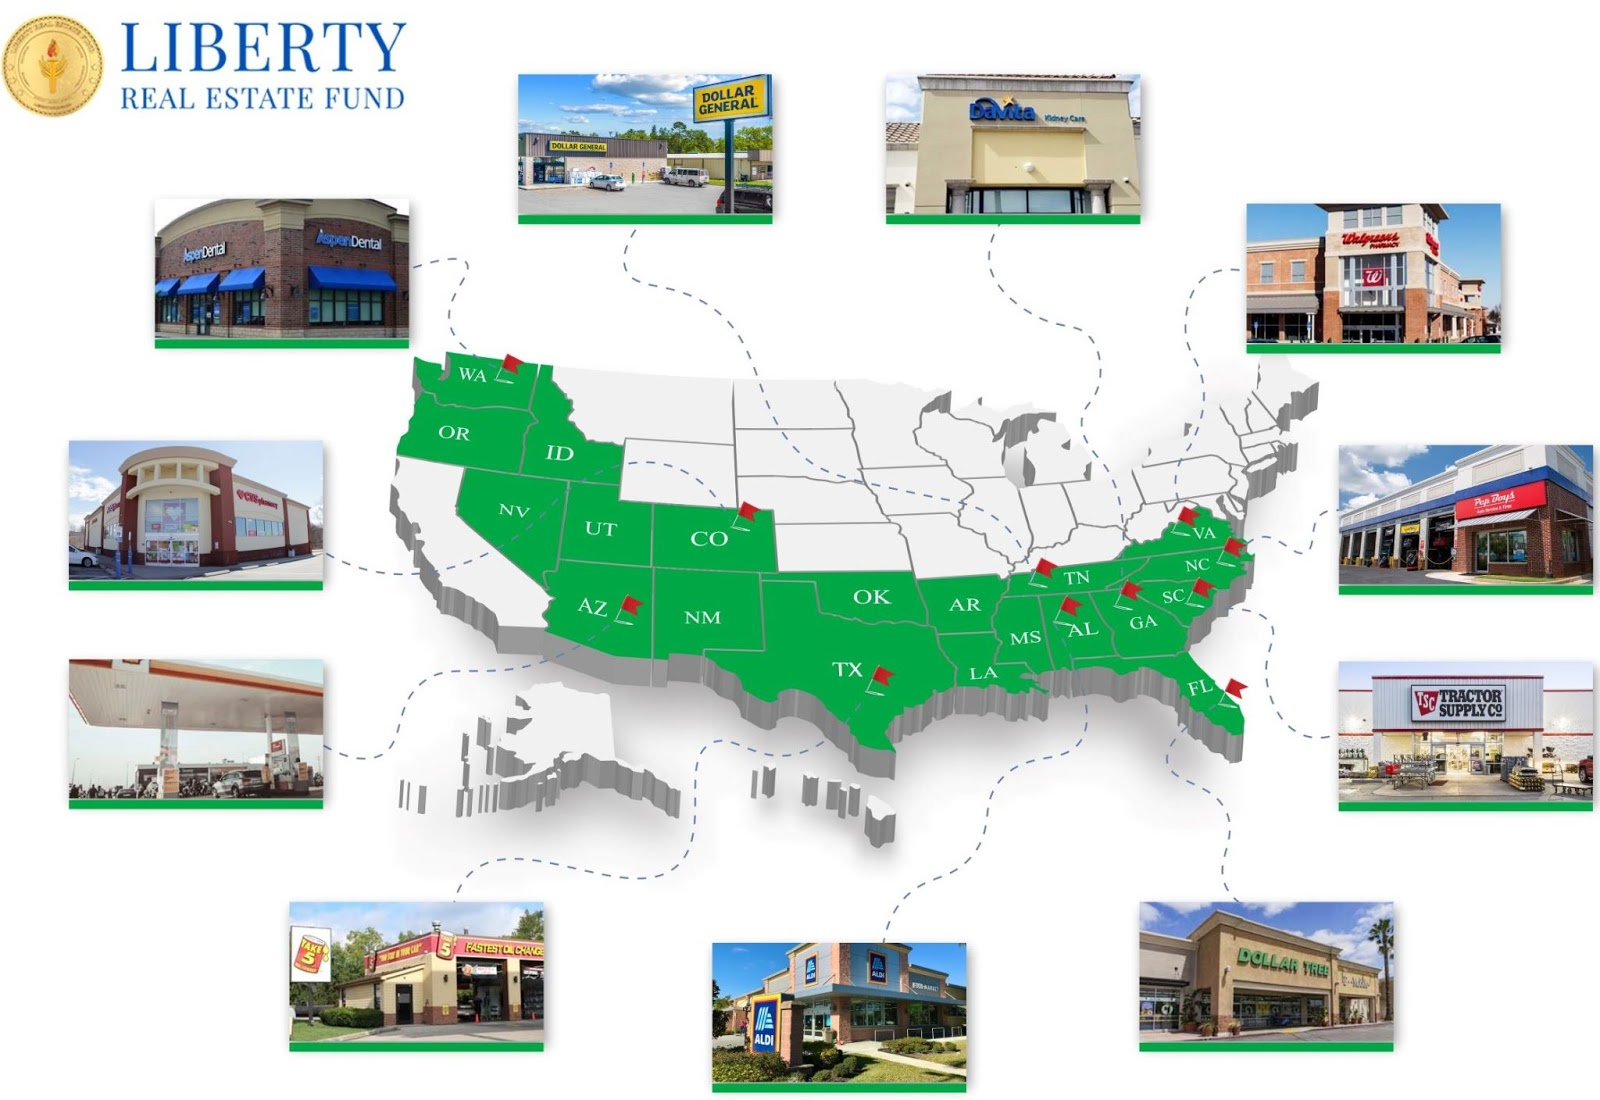 Map of the United States showing the targeted Net Lease, Triple Net, NNN properties CVS, Aldi, Tractor Supply, Dollar Tree in Florida, Dollar General in Tennessee, Pep Boys in North Carolina, DaVita, Take 5 in Texas